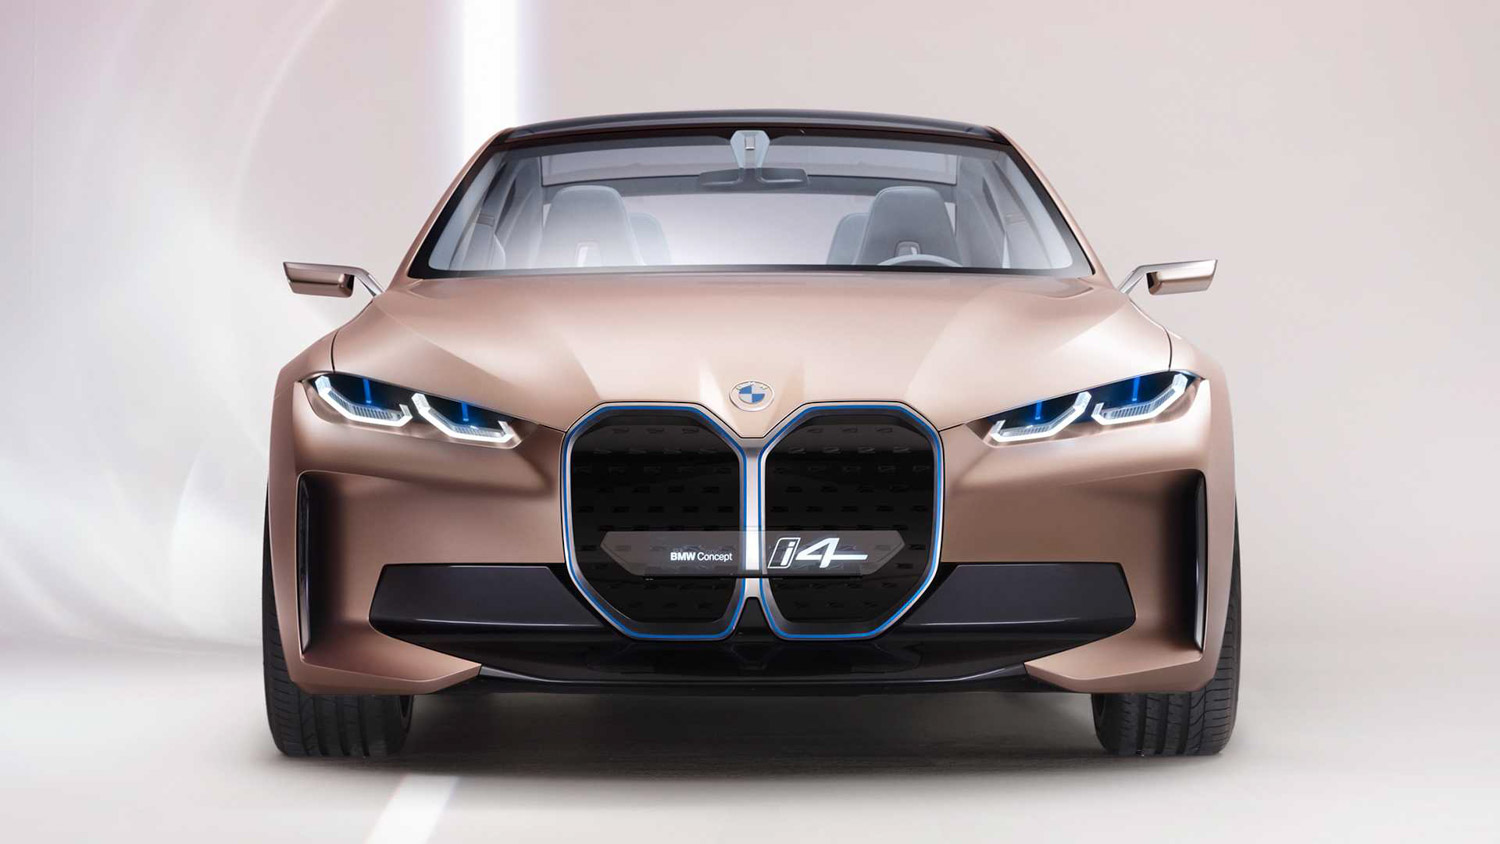 All-Electric BMW 3 Series Spied On Test, Launch Expected In 2023